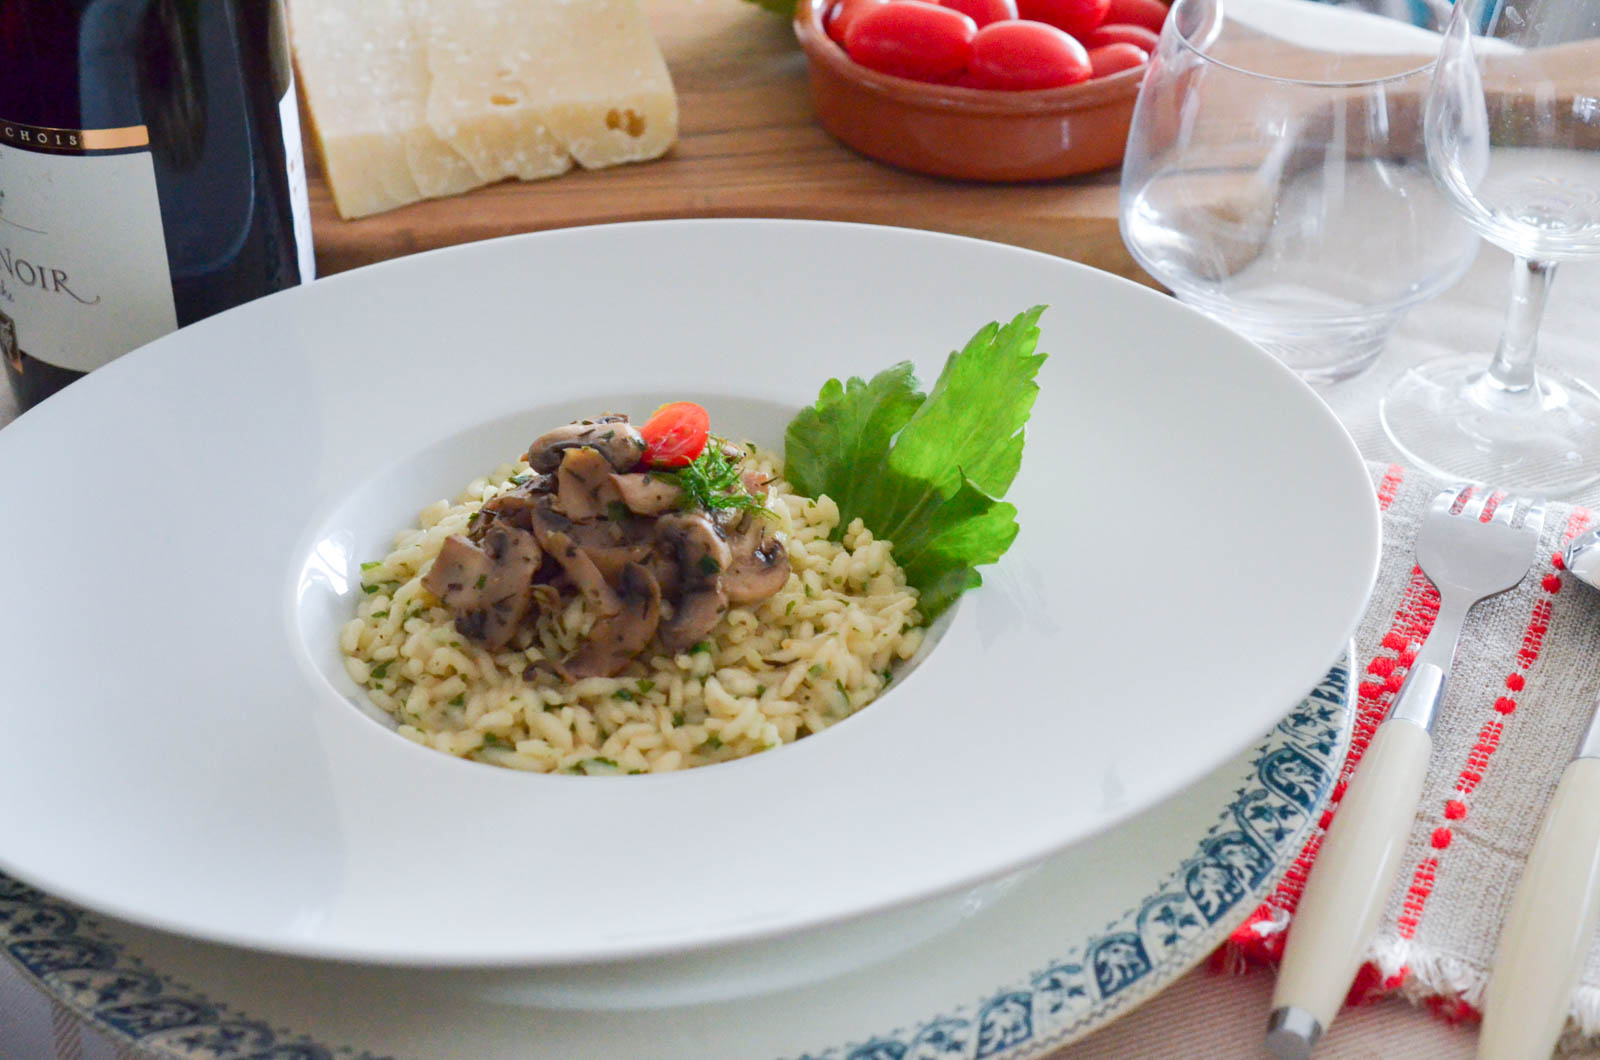 Risotto Champignons Ail Thym Persil (6 Sur 9)